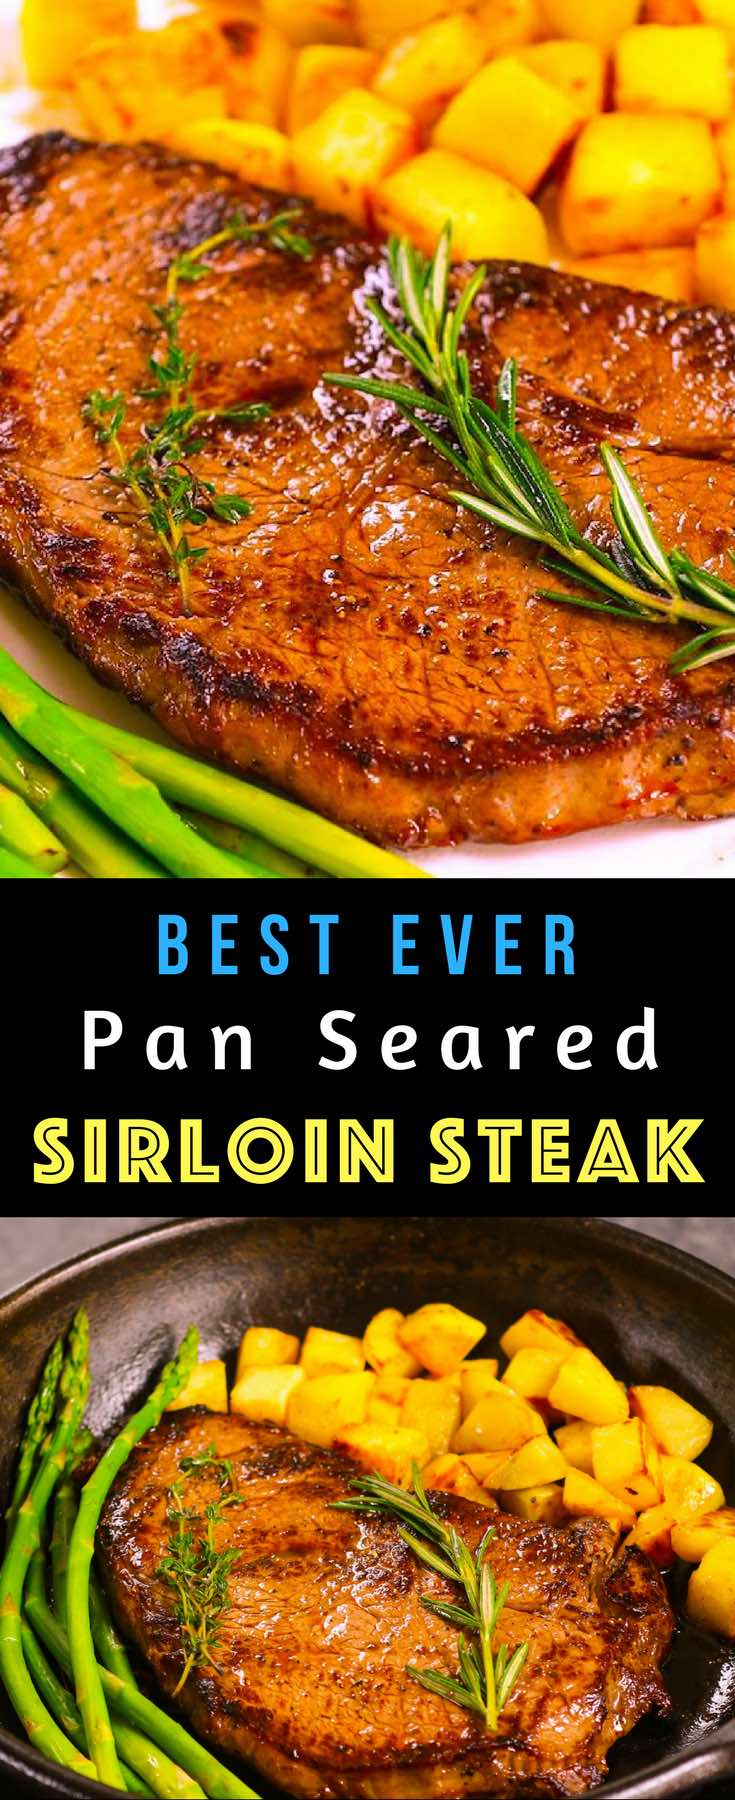 This is the topSirloin Steakrecipe you can make on a stovetop. It's tender, juicy and easy to make in 15 minutes for an elegant weeknight dinner. Serve with sauteed potatoes and green vegetables for the perfect meal. #SirloinSteak #panSearedSteak